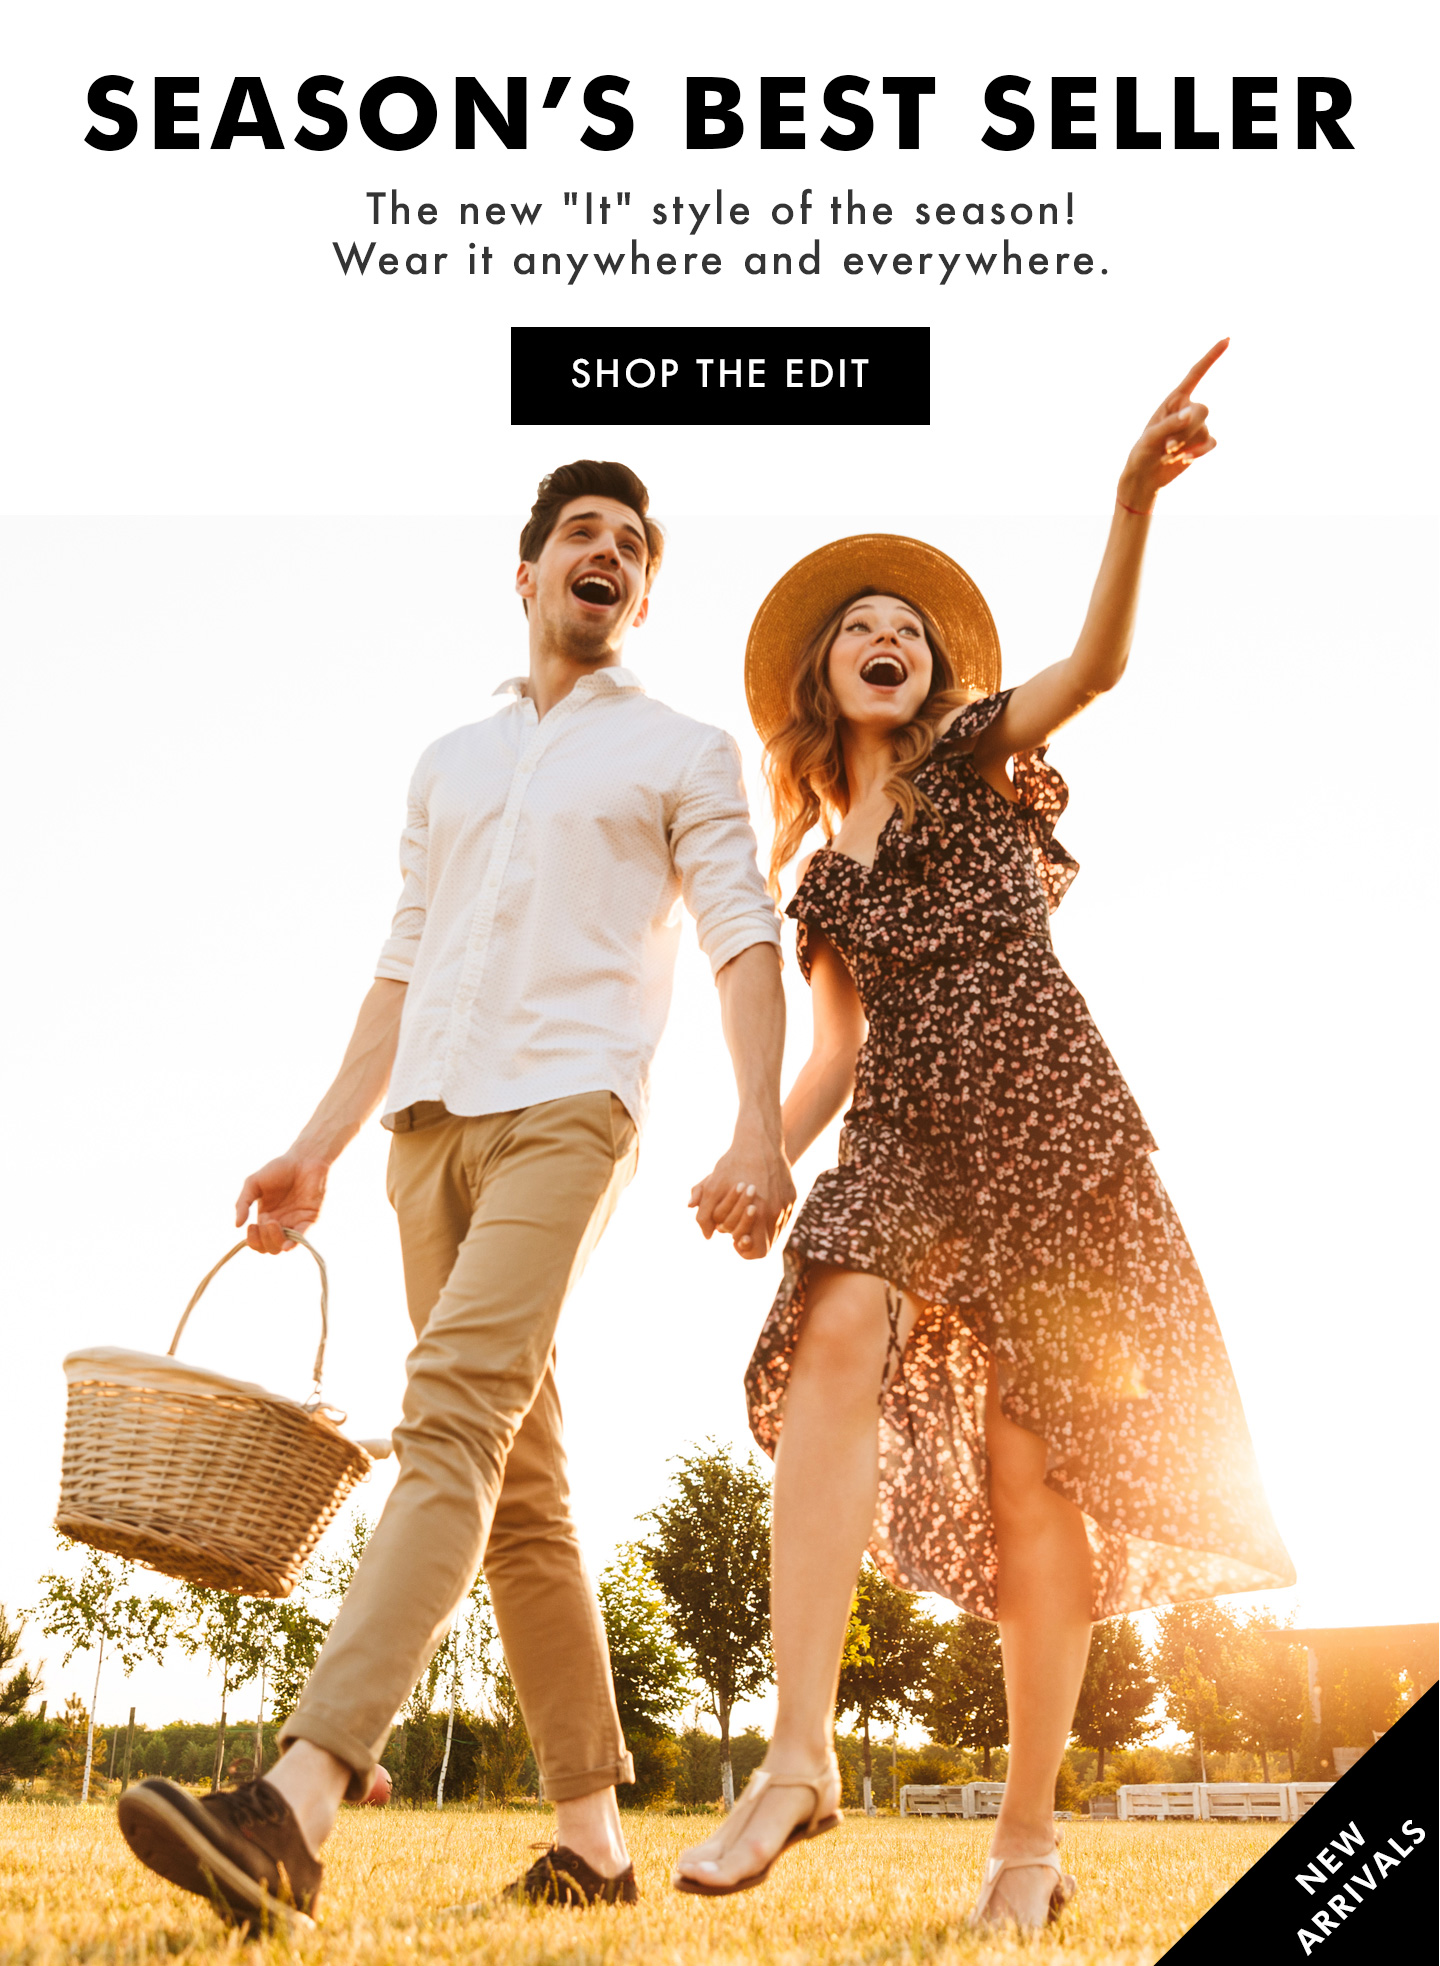 d6a28f0c2 Brands For Less - Online shopping UAE